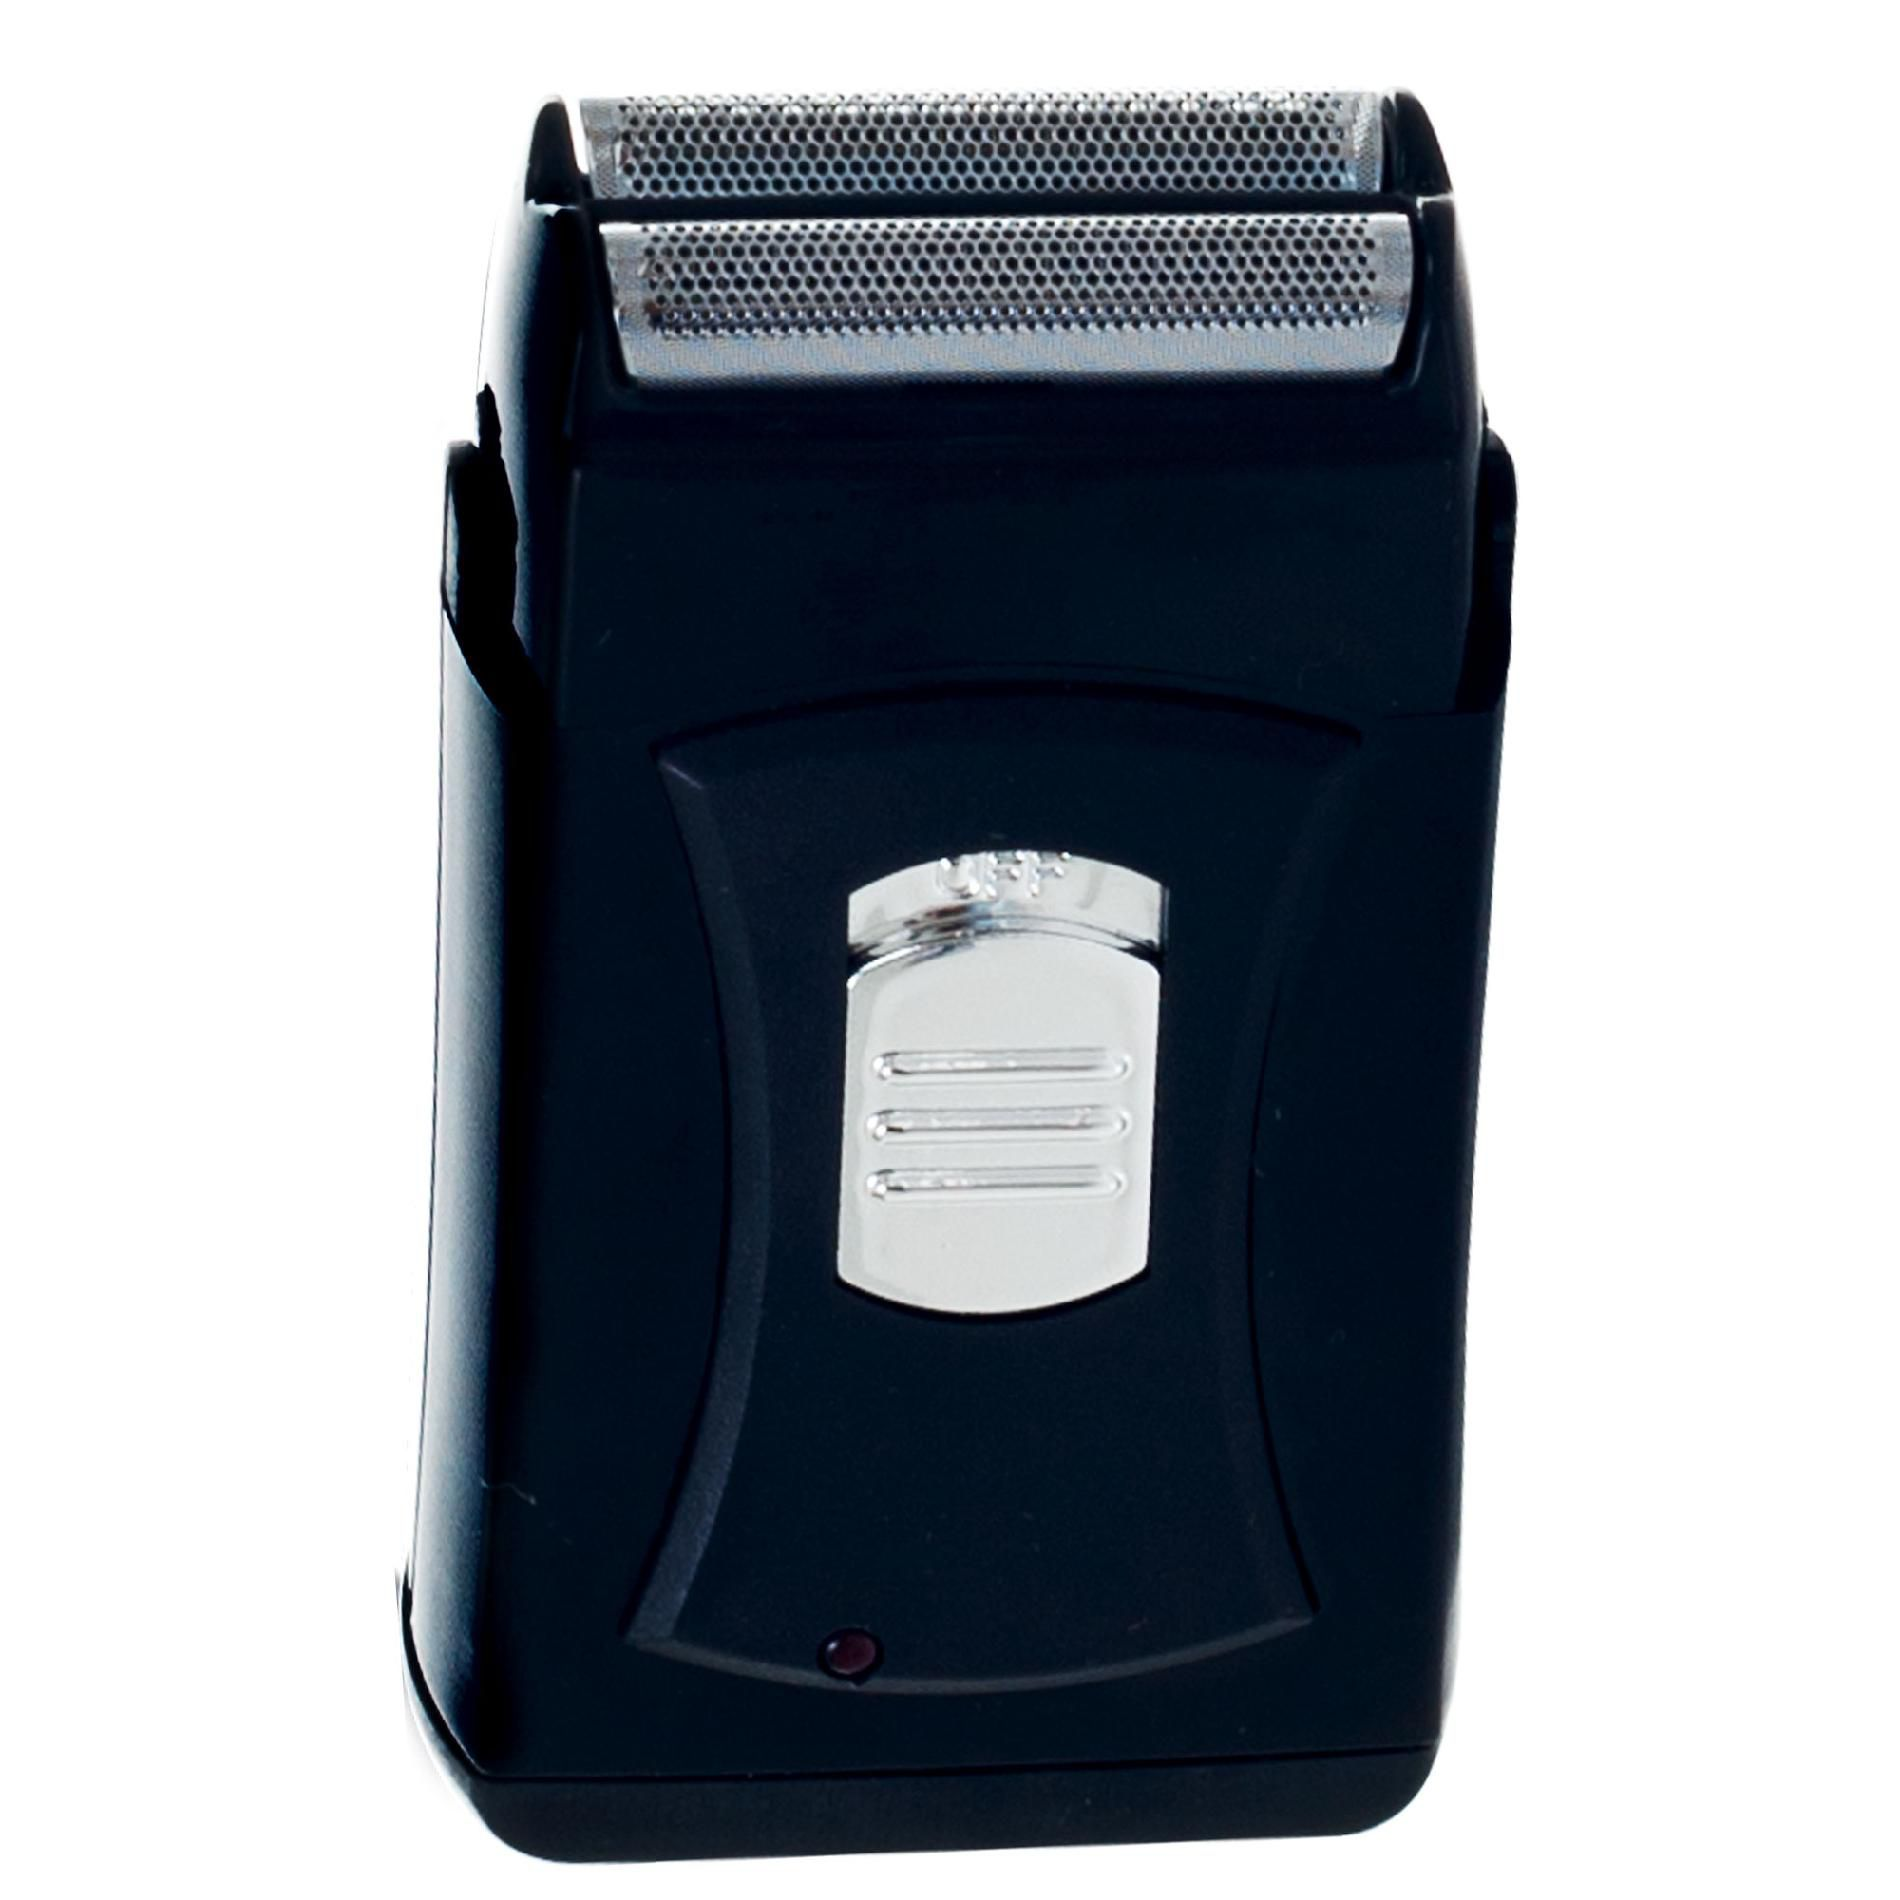 Trademark Home On the Go Rechargeable Travel Shaver